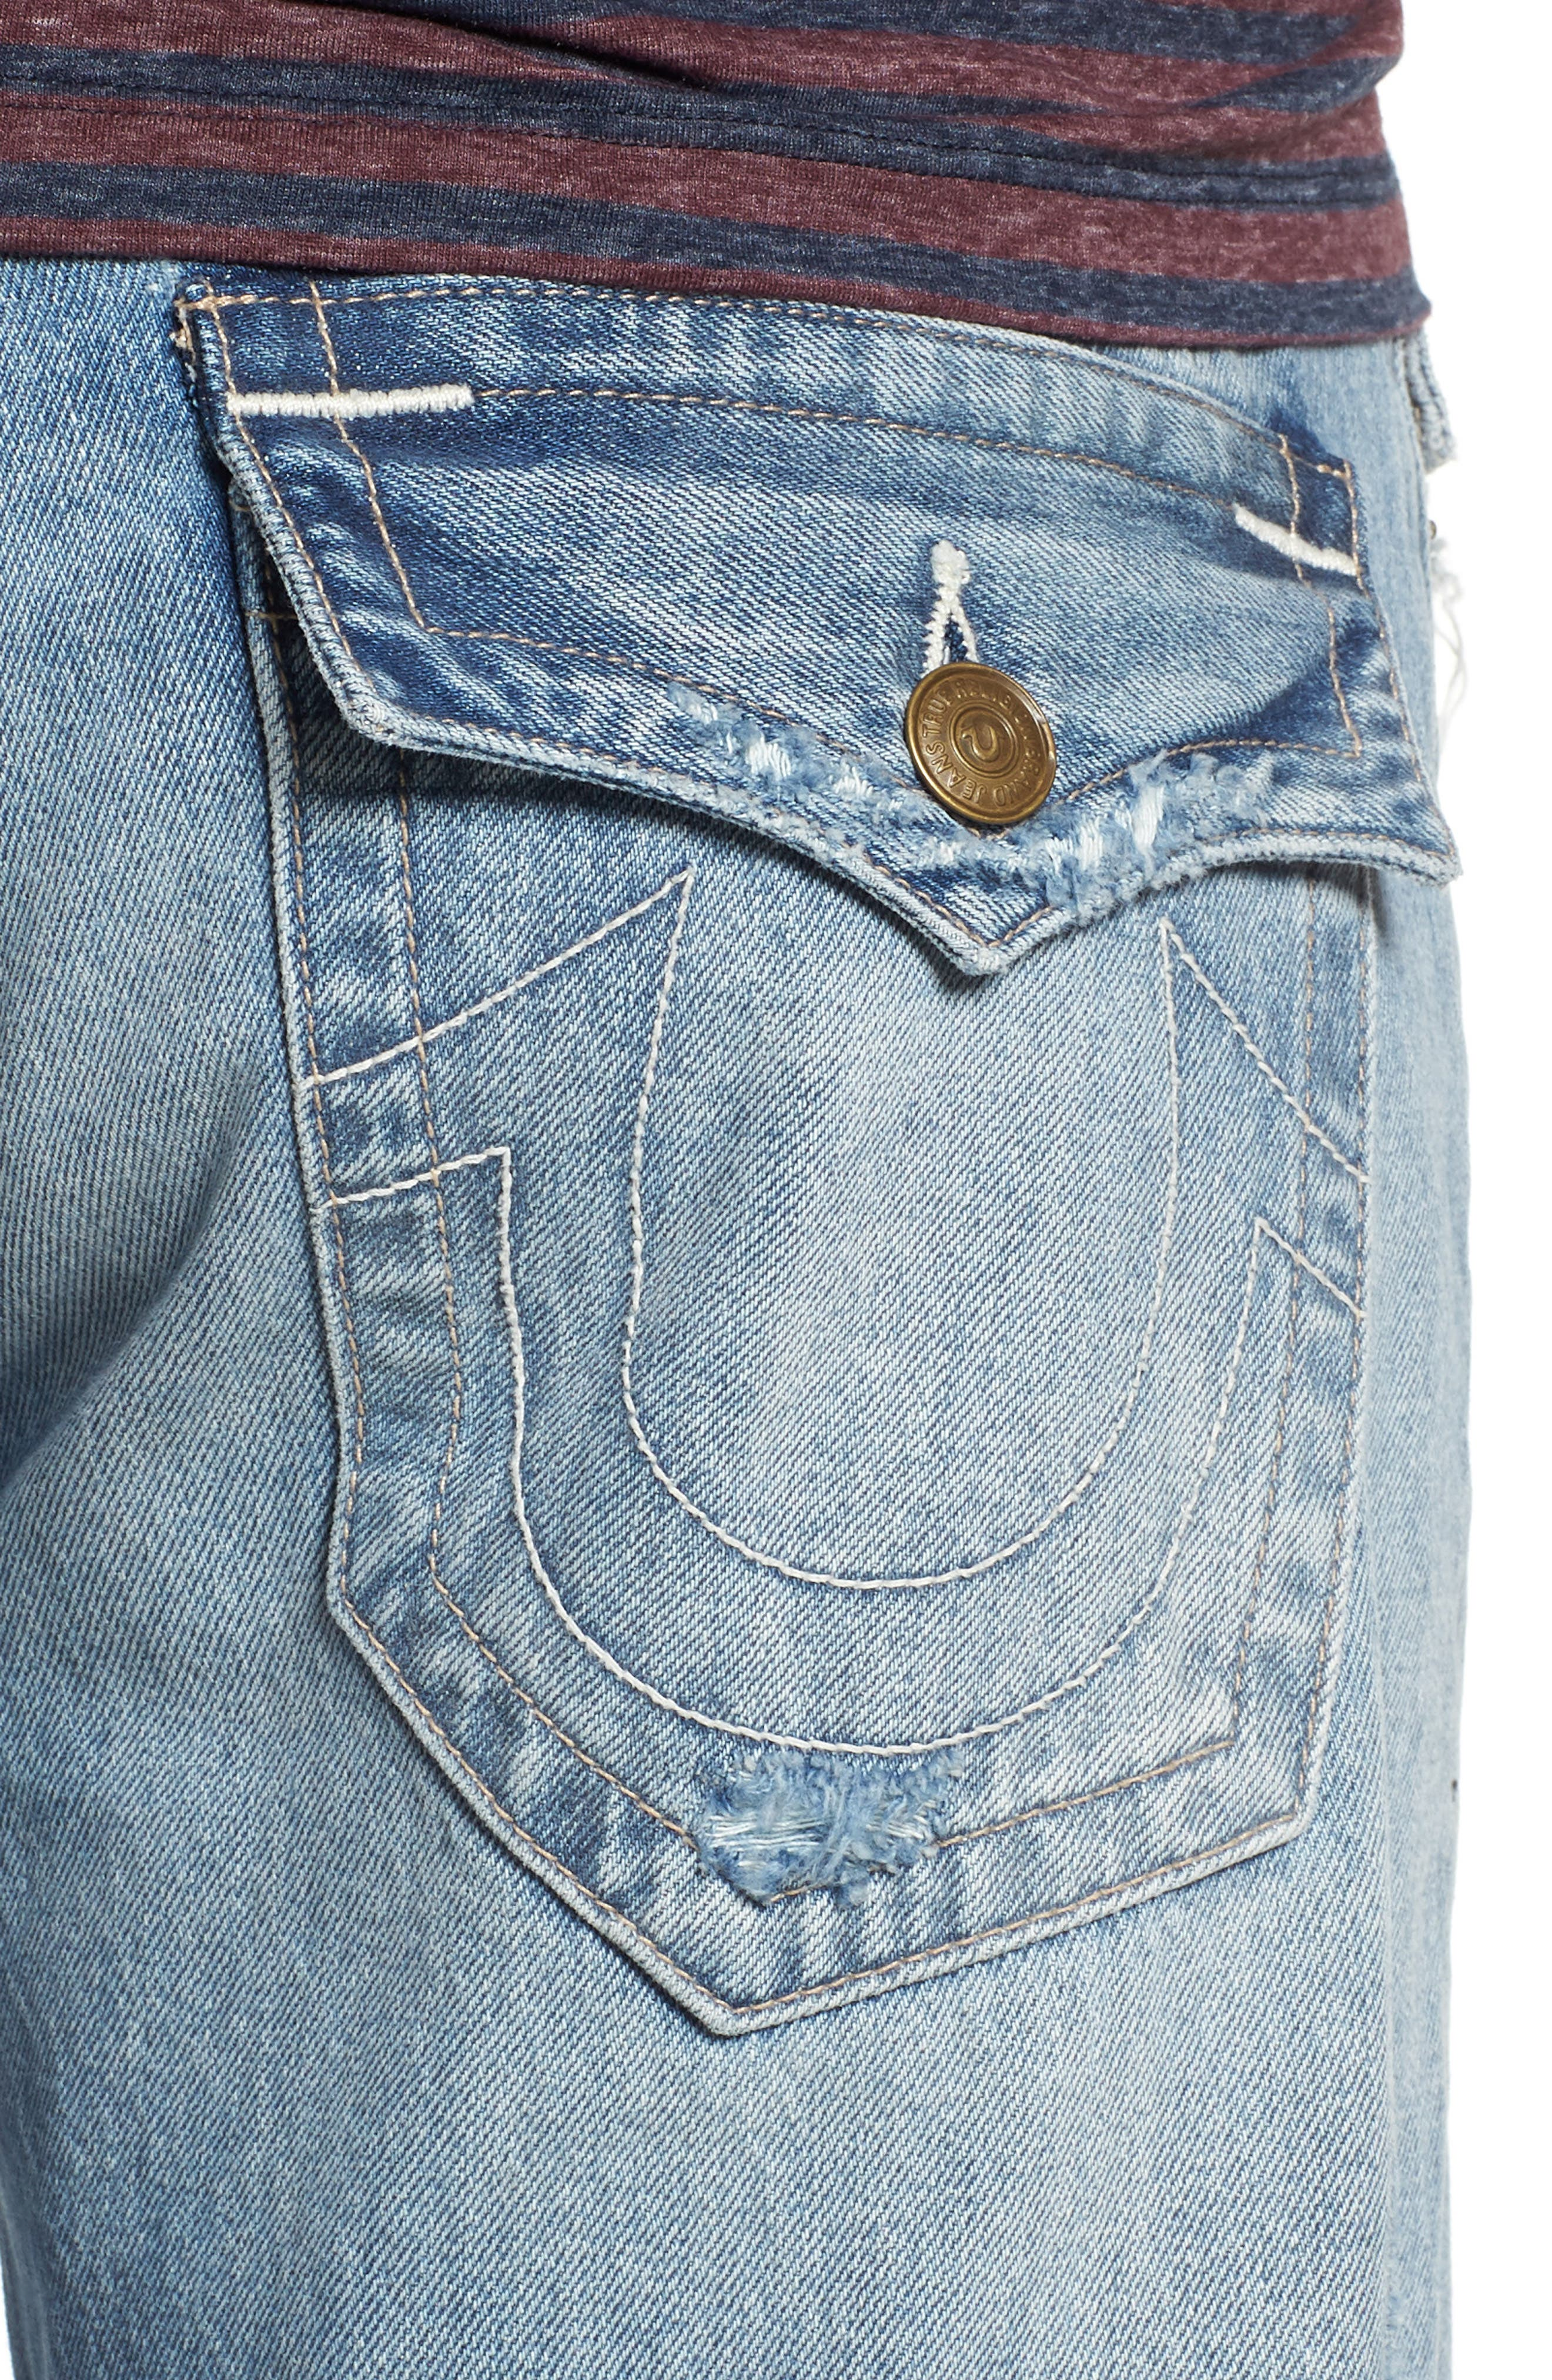 TRUE RELIGION BRAND JEANS,                             Geno Straight Leg Jeans,                             Alternate thumbnail 4, color,                             EQNM DELINGUENT